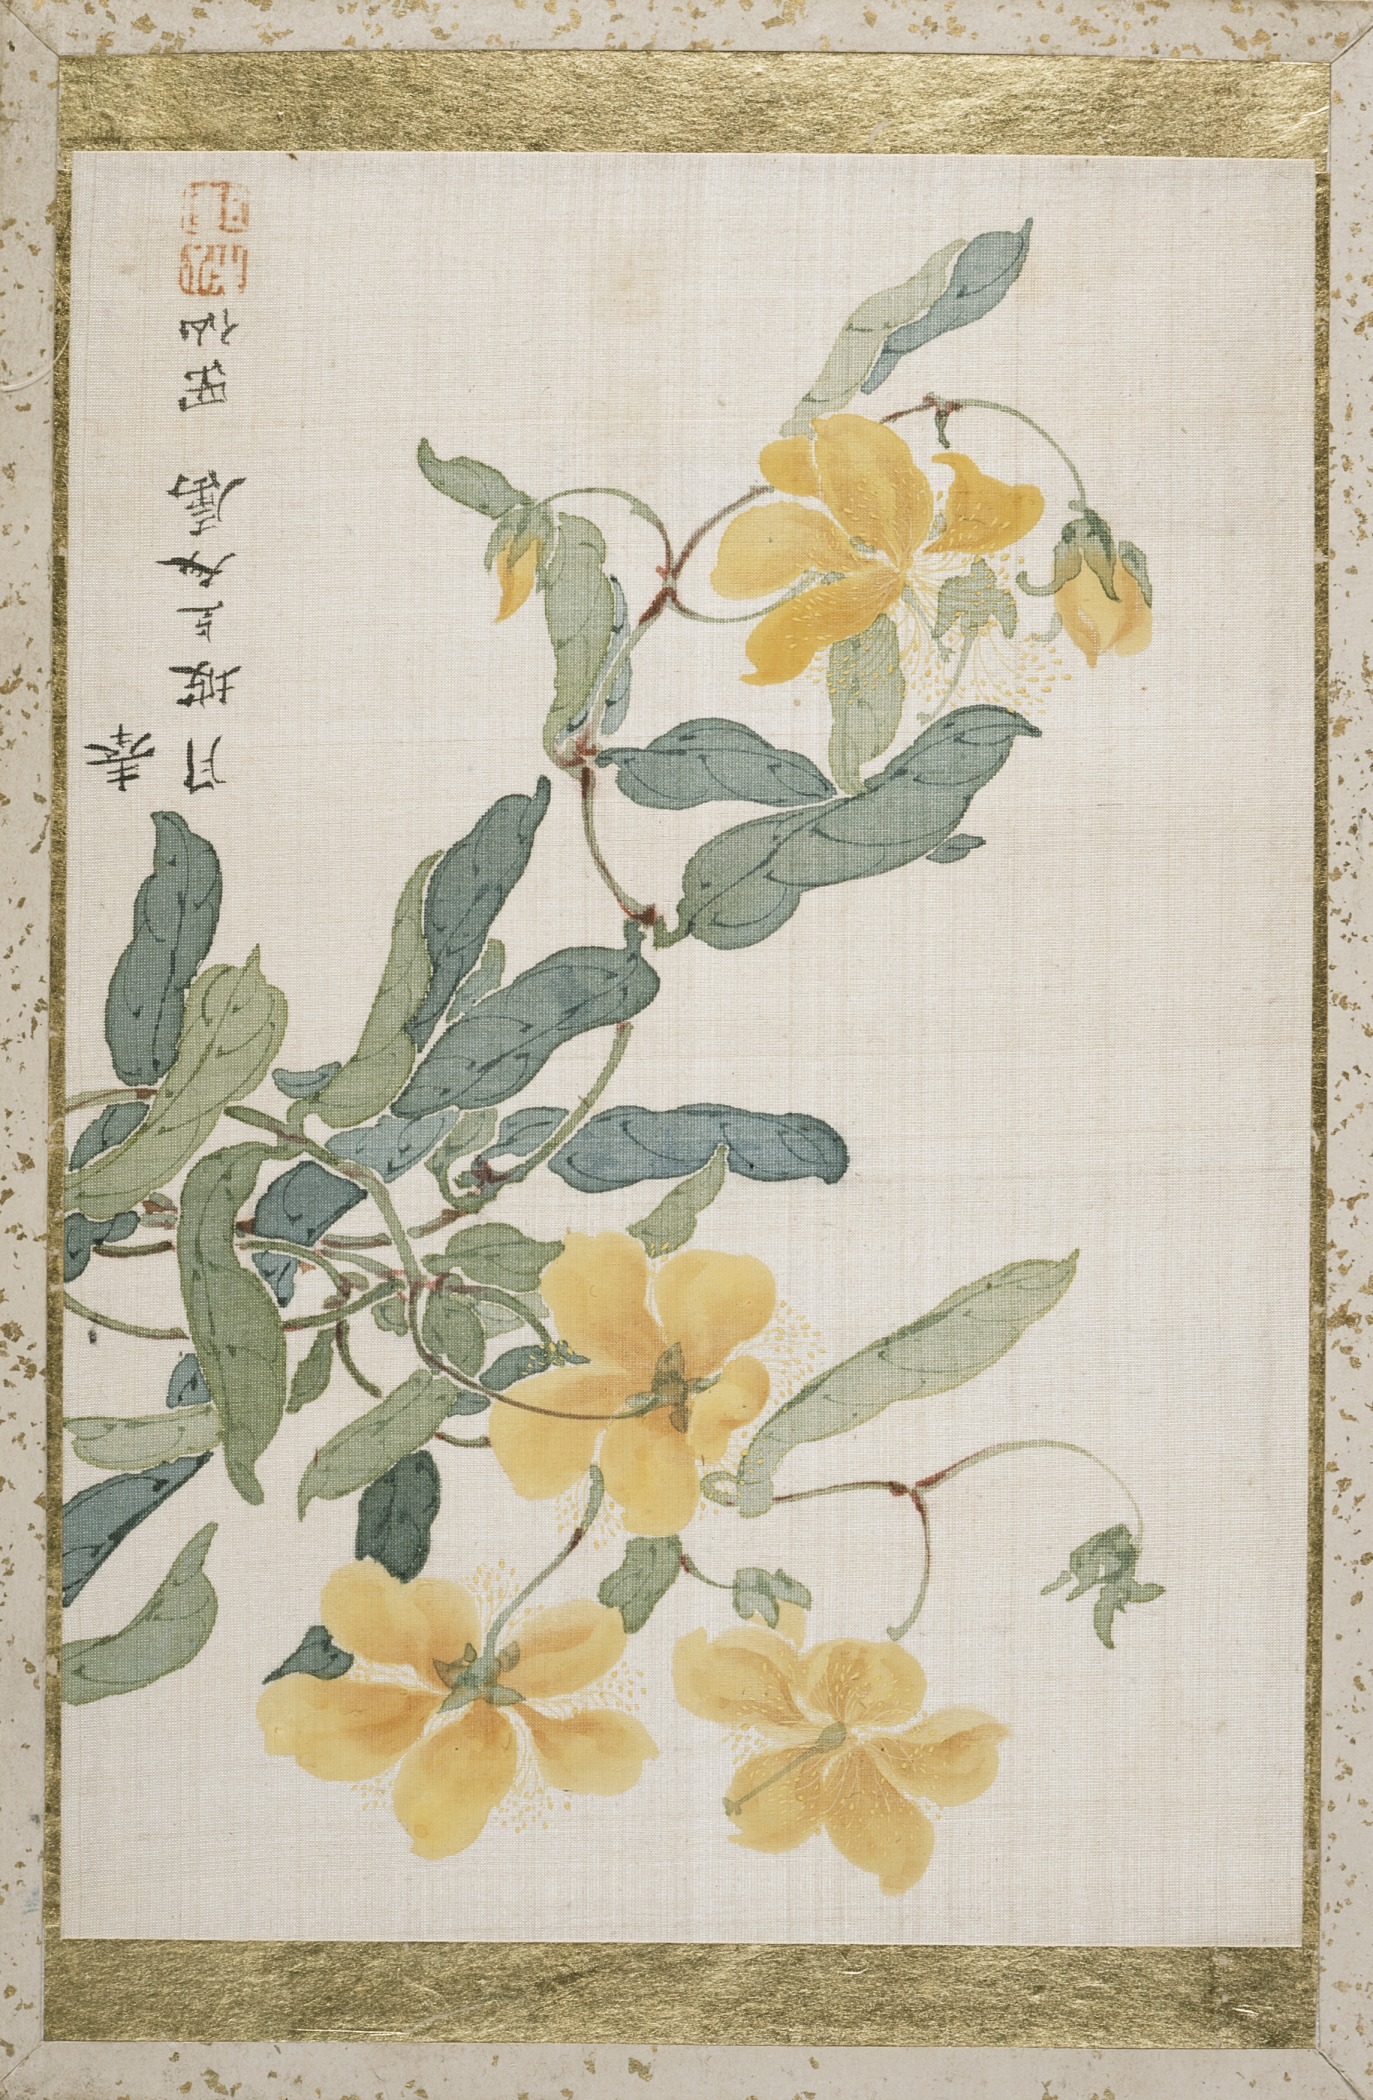 https://upload.wikimedia.org/wikipedia/commons/1/1a/Pictures_of_Flowers_and_Birds_LACMA_M.85.99_%284_of_25%29.jpg